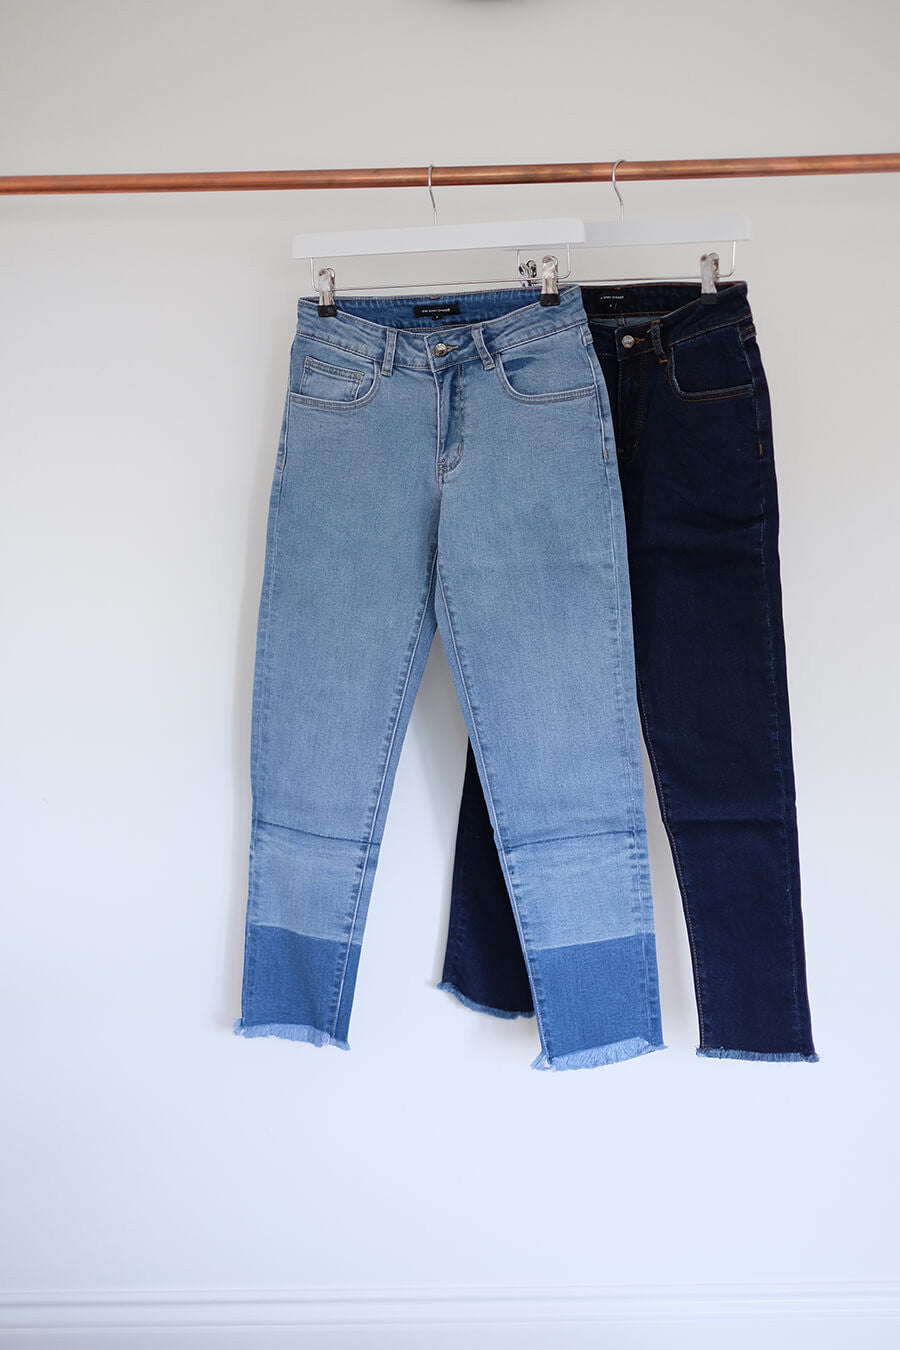 Still Not Your Mum's Jeans